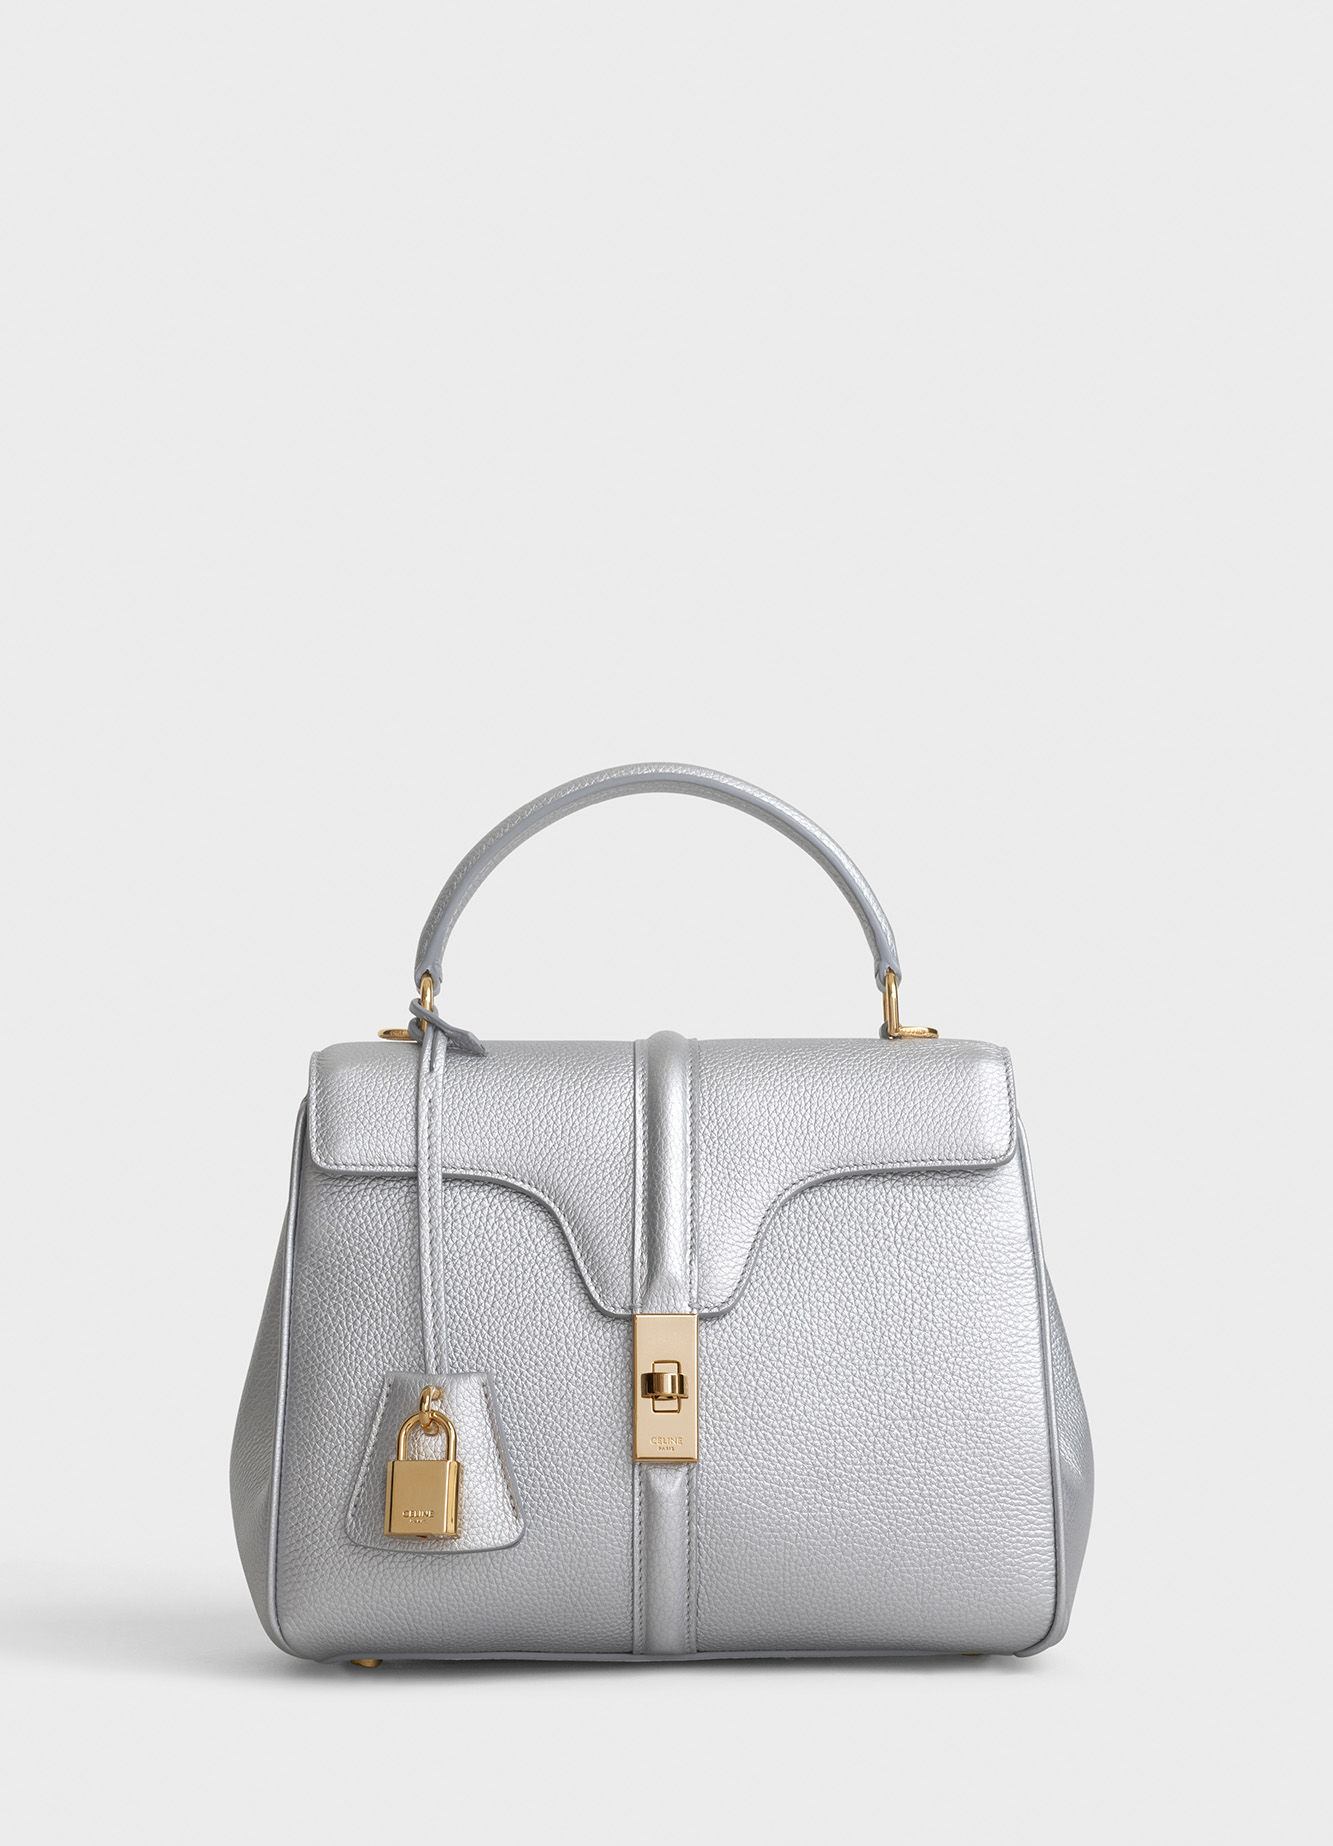 CELINE SMALL 16 BAG IN LAMINATED GRAINED CALFSKIN 188003 SILVER